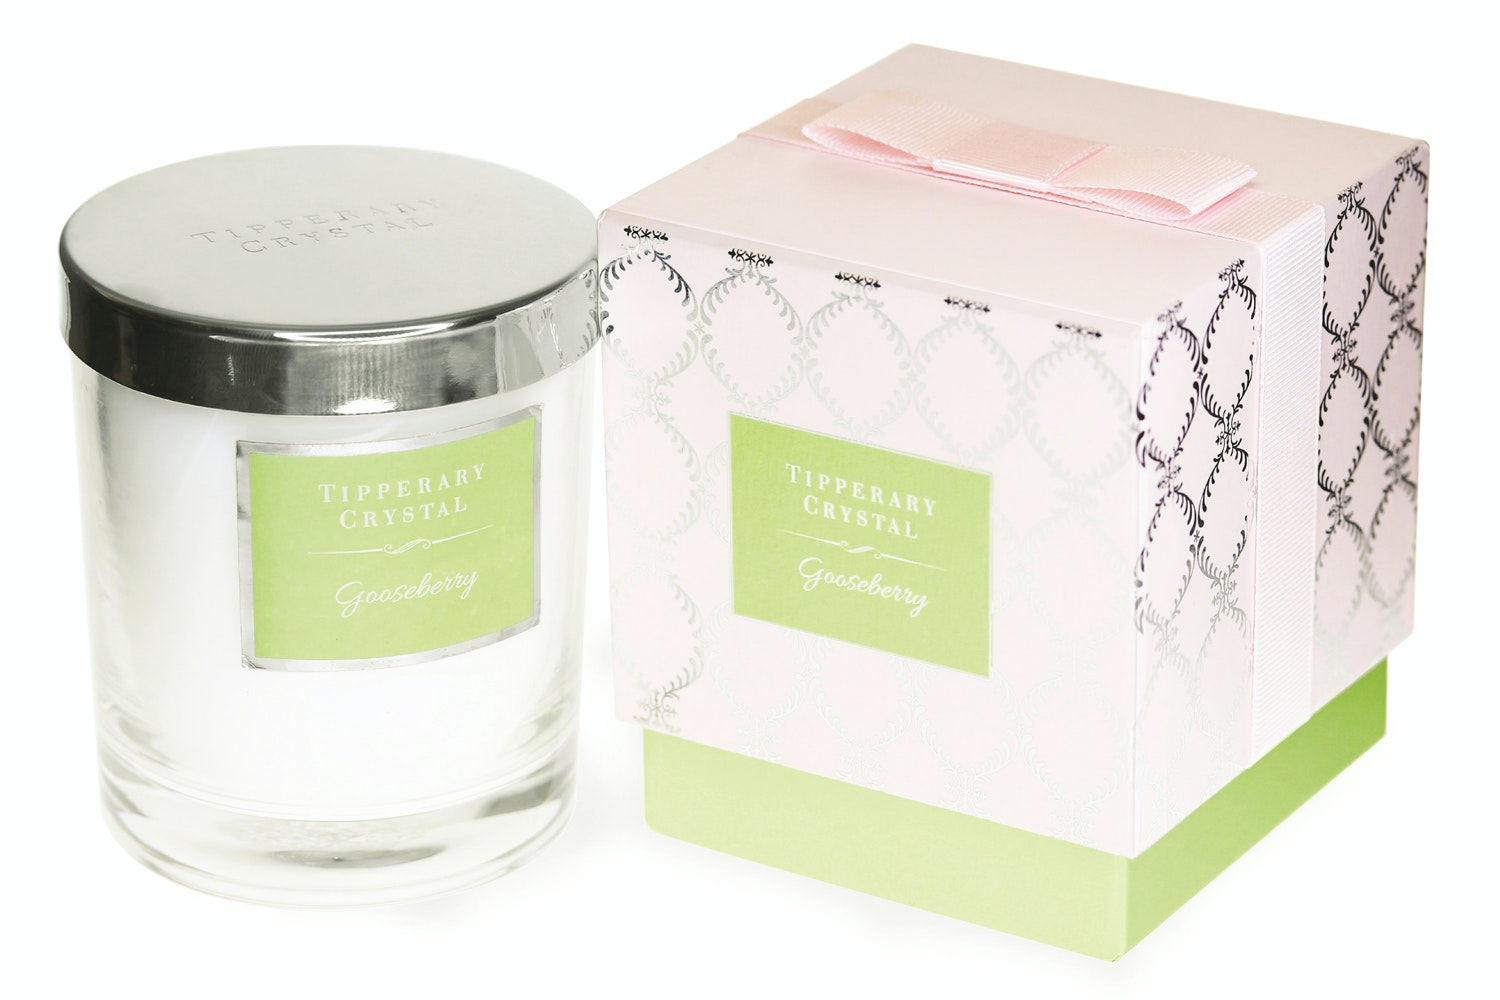 Tipperary Crystal Luxury Candle | Gooseberry